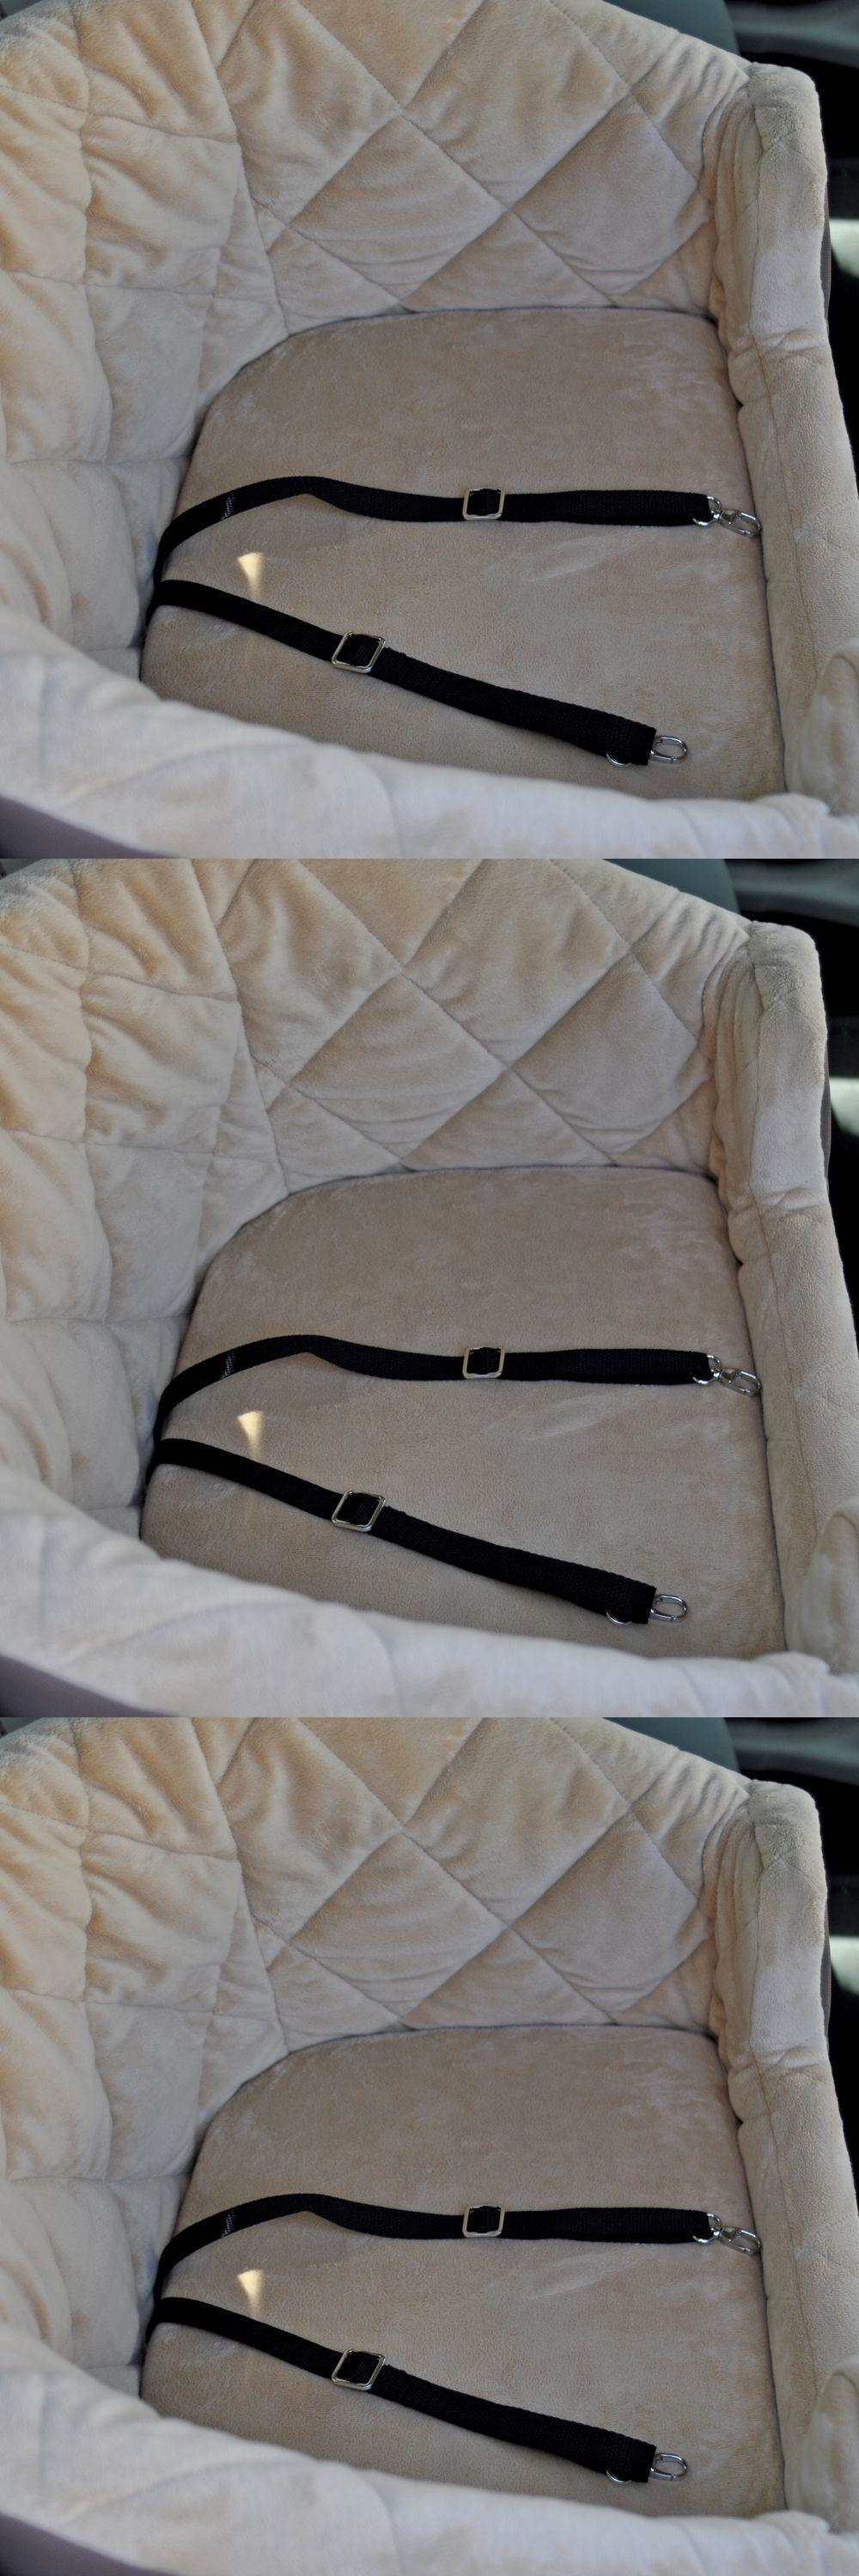 Car seats and barriers kandh pet products small gray pet car